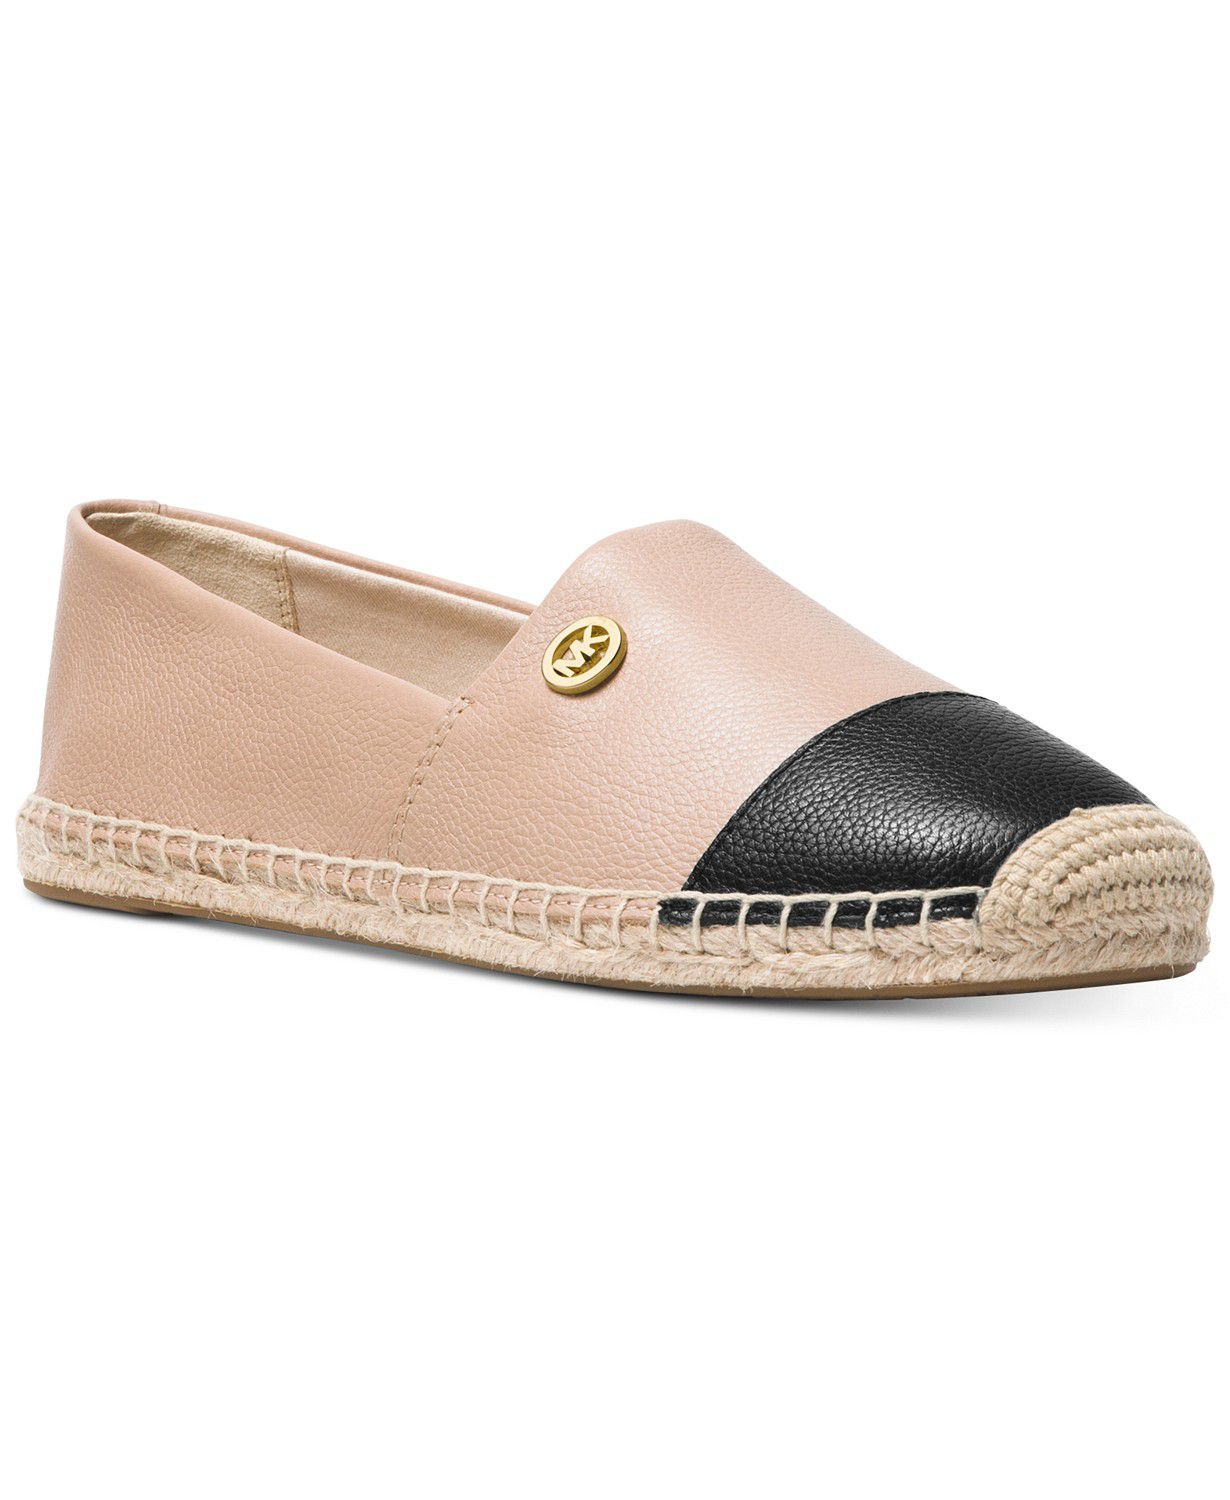 Designer Espadrilles Michael Kors macys.com $85.00 SHOP NOW Espadrilles are humble by nature, but soft leather and a designer brand can be worth spending a little more if you're after something that feels polished. Trust us—those little touches are things other women notice.